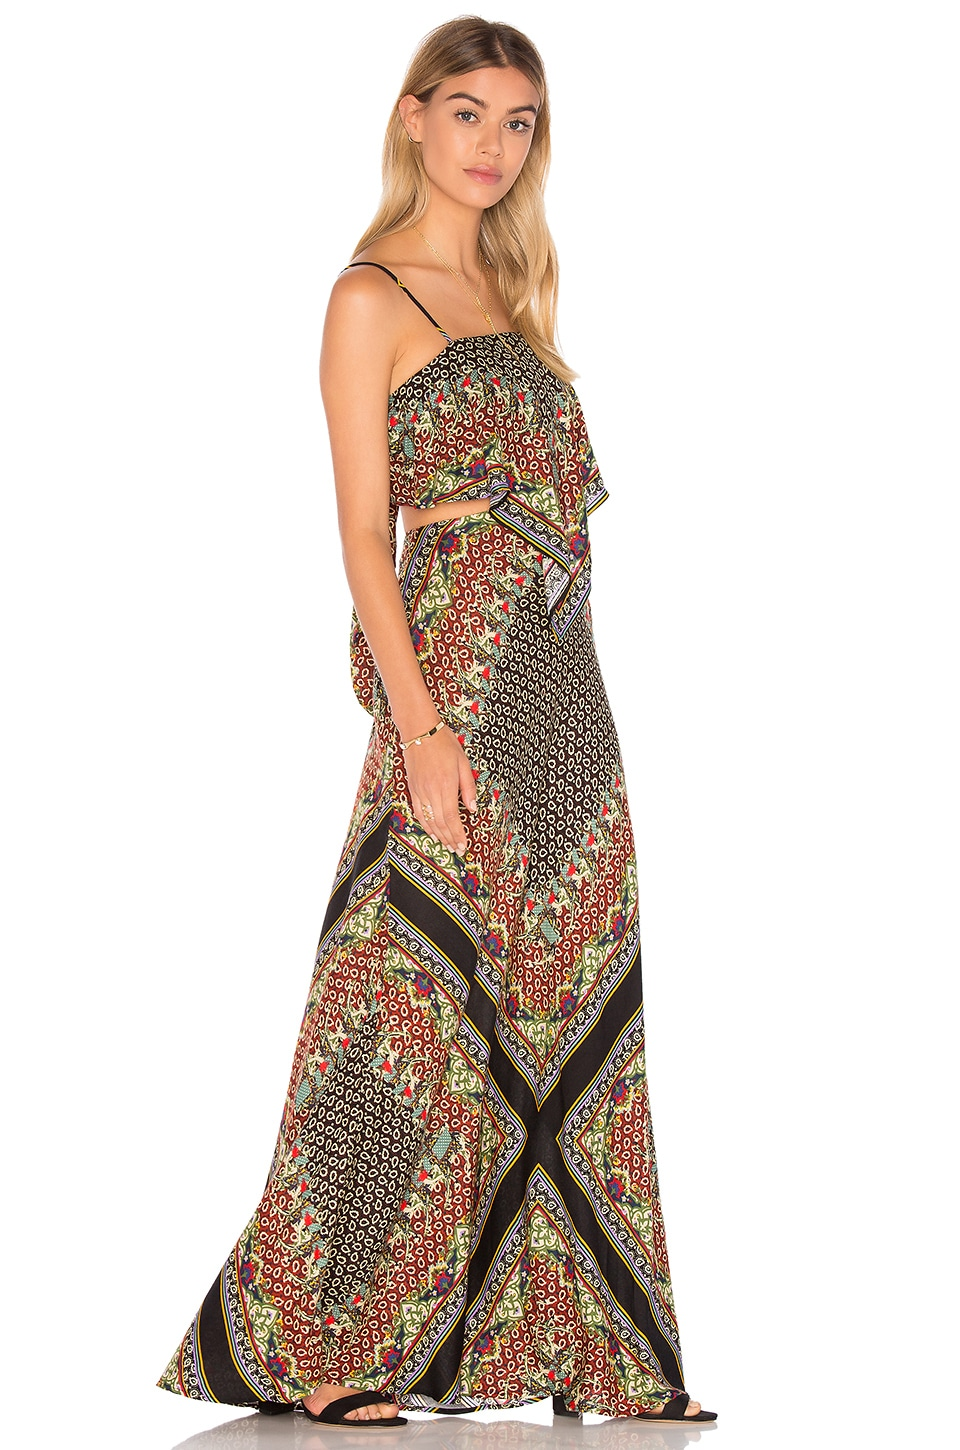 FARM Cutout Maxi Dress in Black Camel